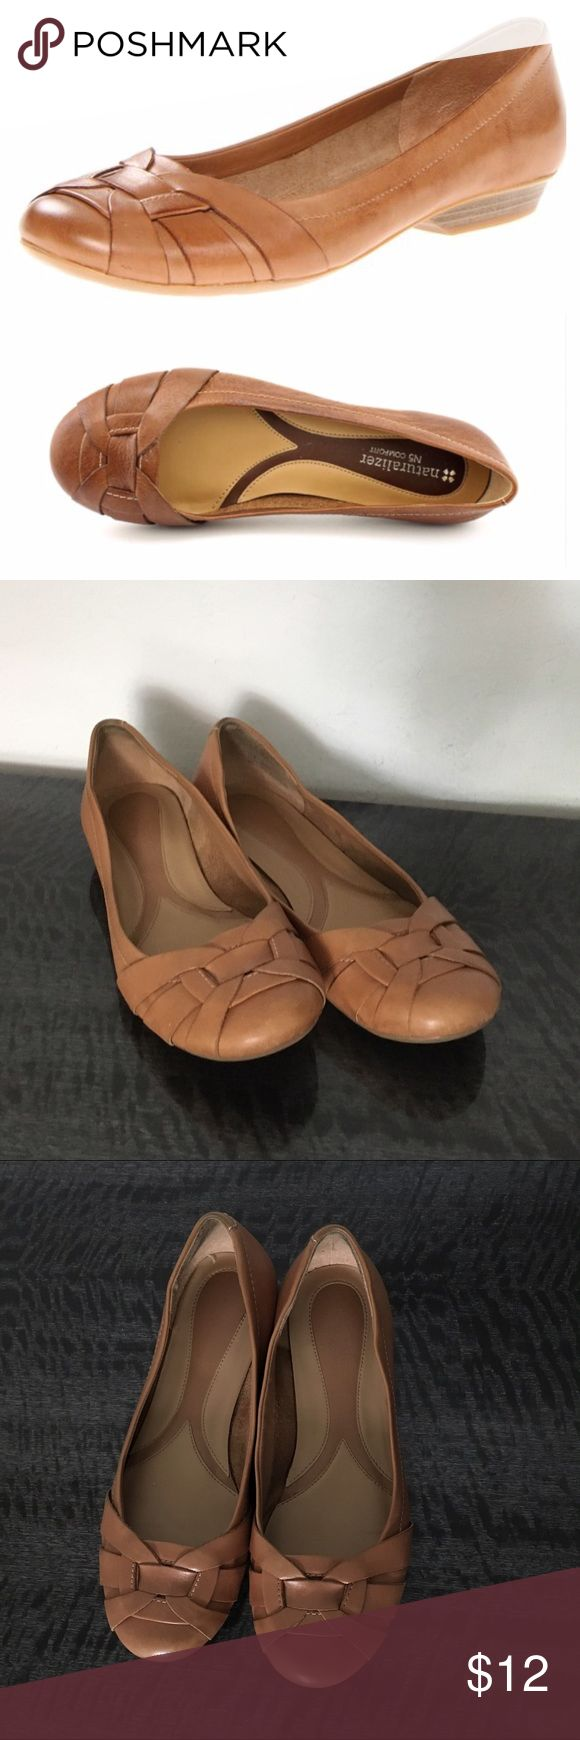 Size:5.5 Naturalizer Flats Size:5.5 // WILL PRICE DROP FOR DISCOUNTED SHIPPING! naturalizer Maude flats • in light brown • great for work • leather is super soft • features cushioning for comfort • reposhing because it's a little loose on me. I'm a smaller 5.5 • light wear • open to reasonable offers :) Naturalizer Shoes Flats & Loafers